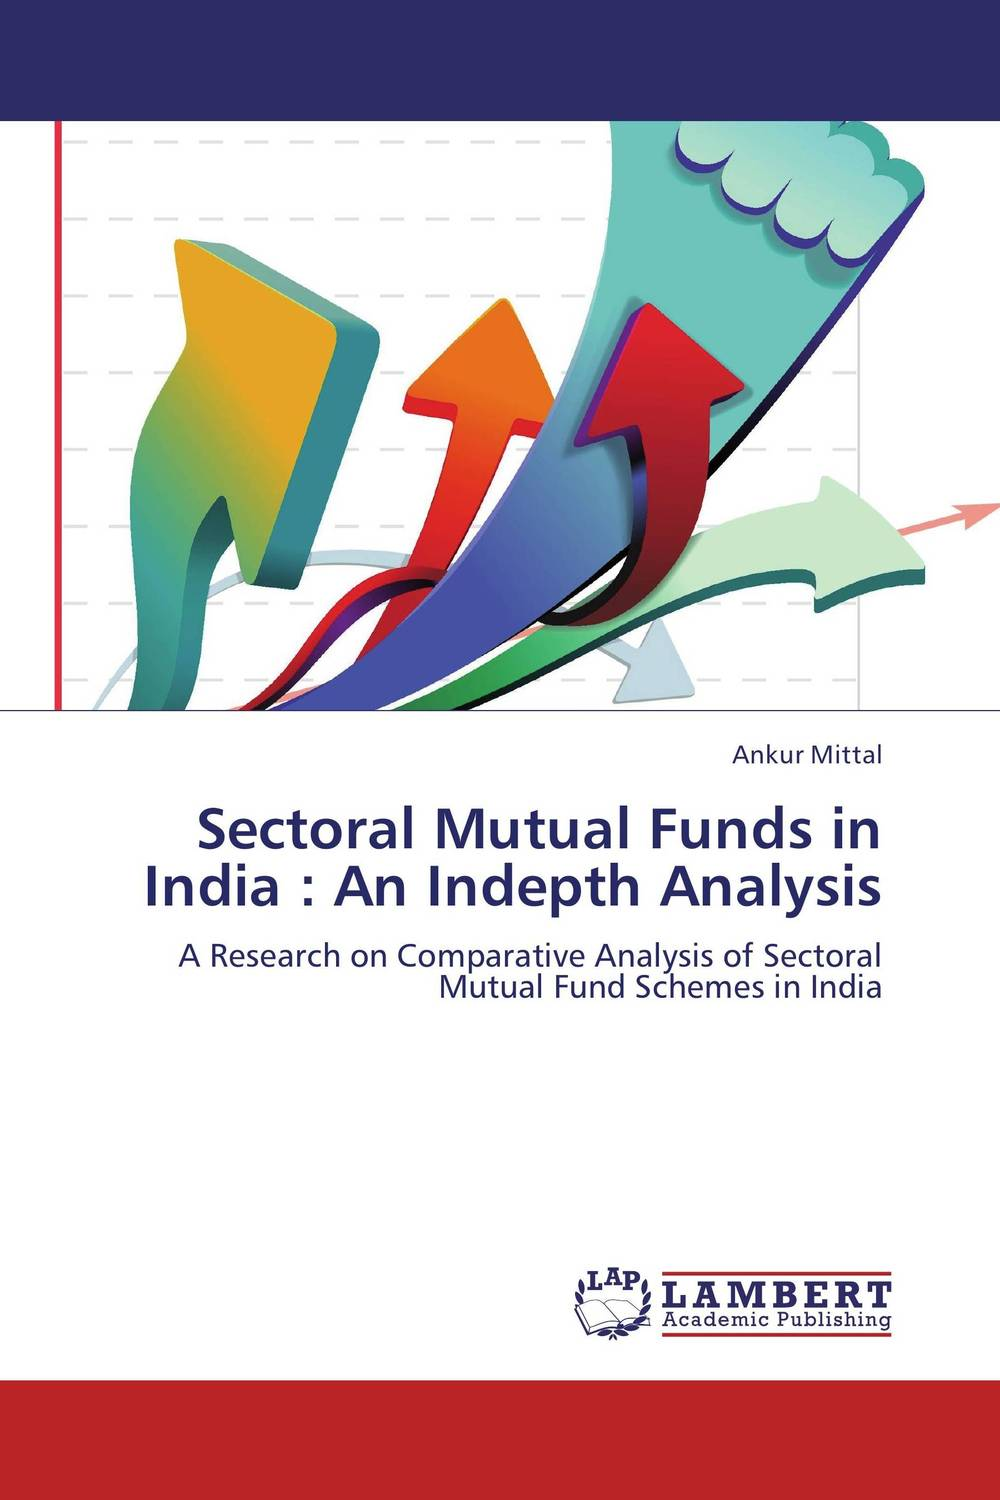 Sectoral Mutual Funds in India : An Indepth Analysis john haslem a mutual funds portfolio structures analysis management and stewardship